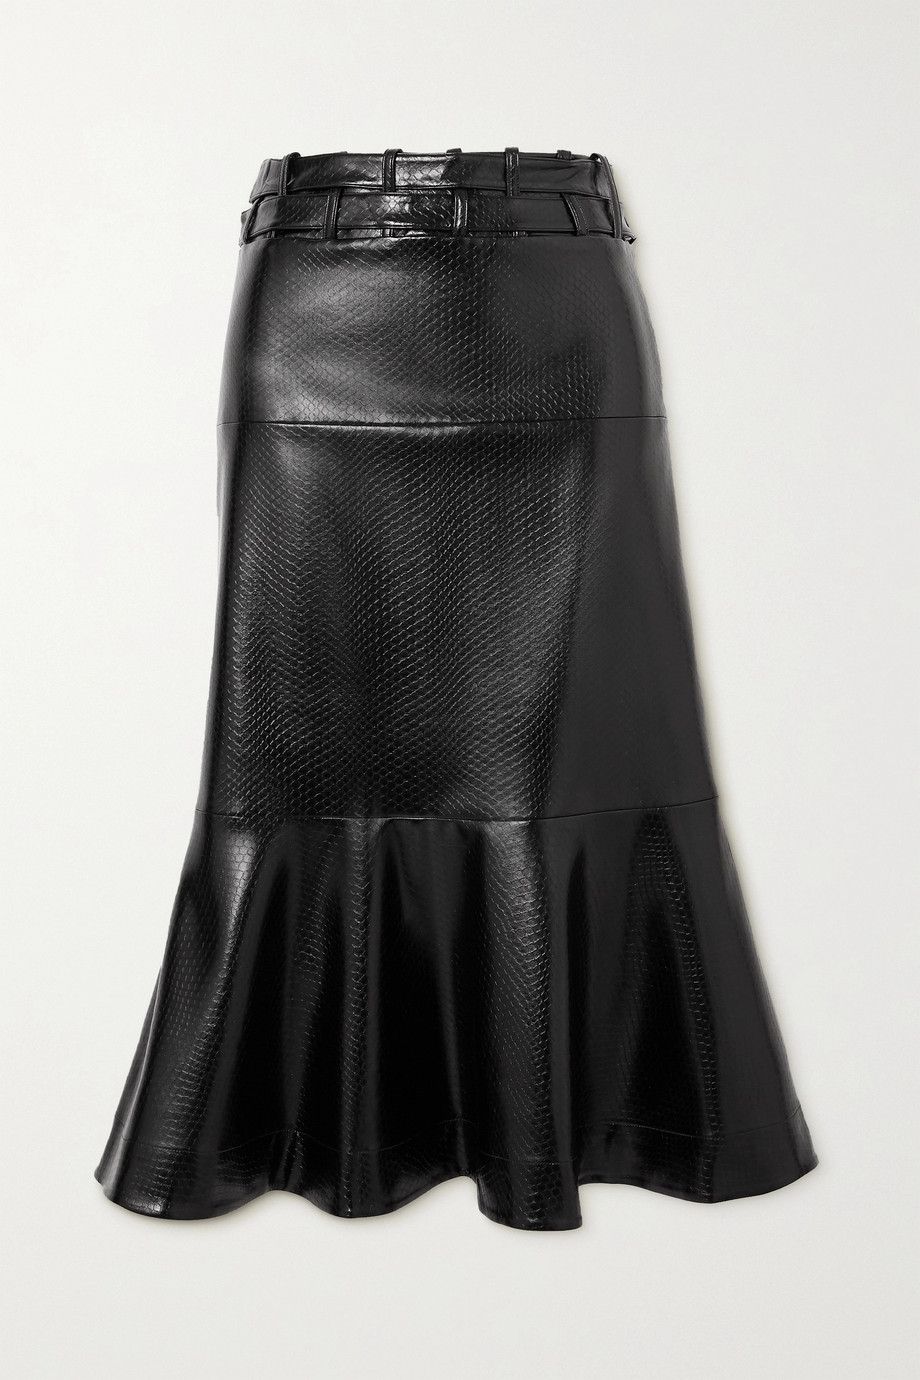 palmer//harding Leuca fluted snake-effect faux leather midi skirt